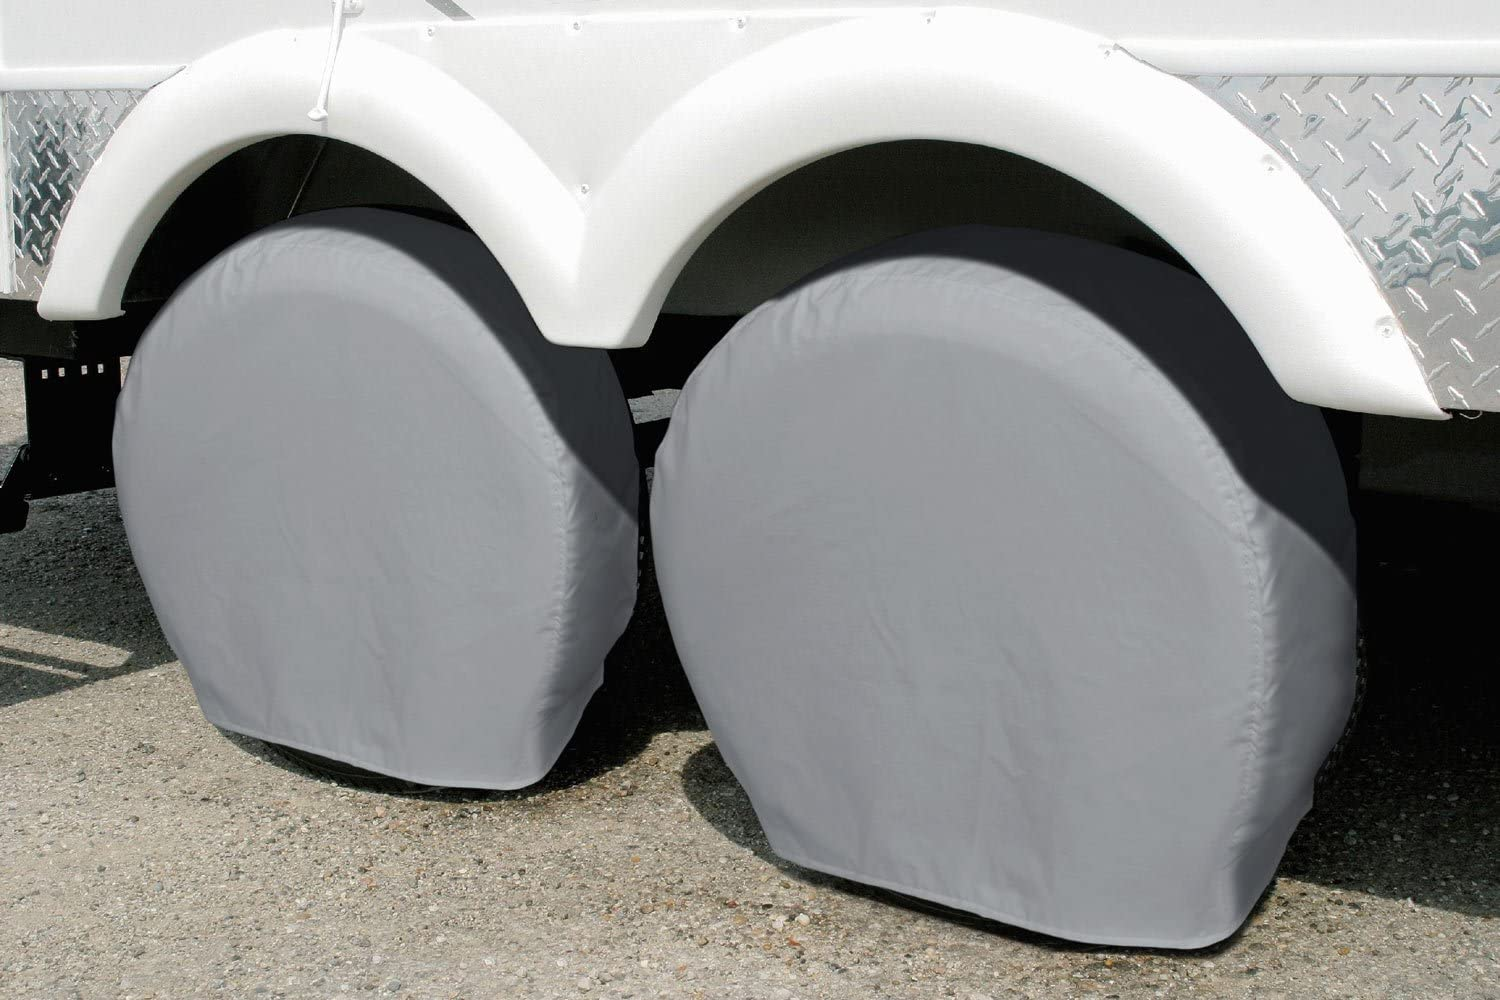 RV White SUV Explore Land Tire Covers 4 Pack Camper Trailer Tough Tire Wheel Protector for Truck Universal Fits Tire Diameters 23-25.75 inches